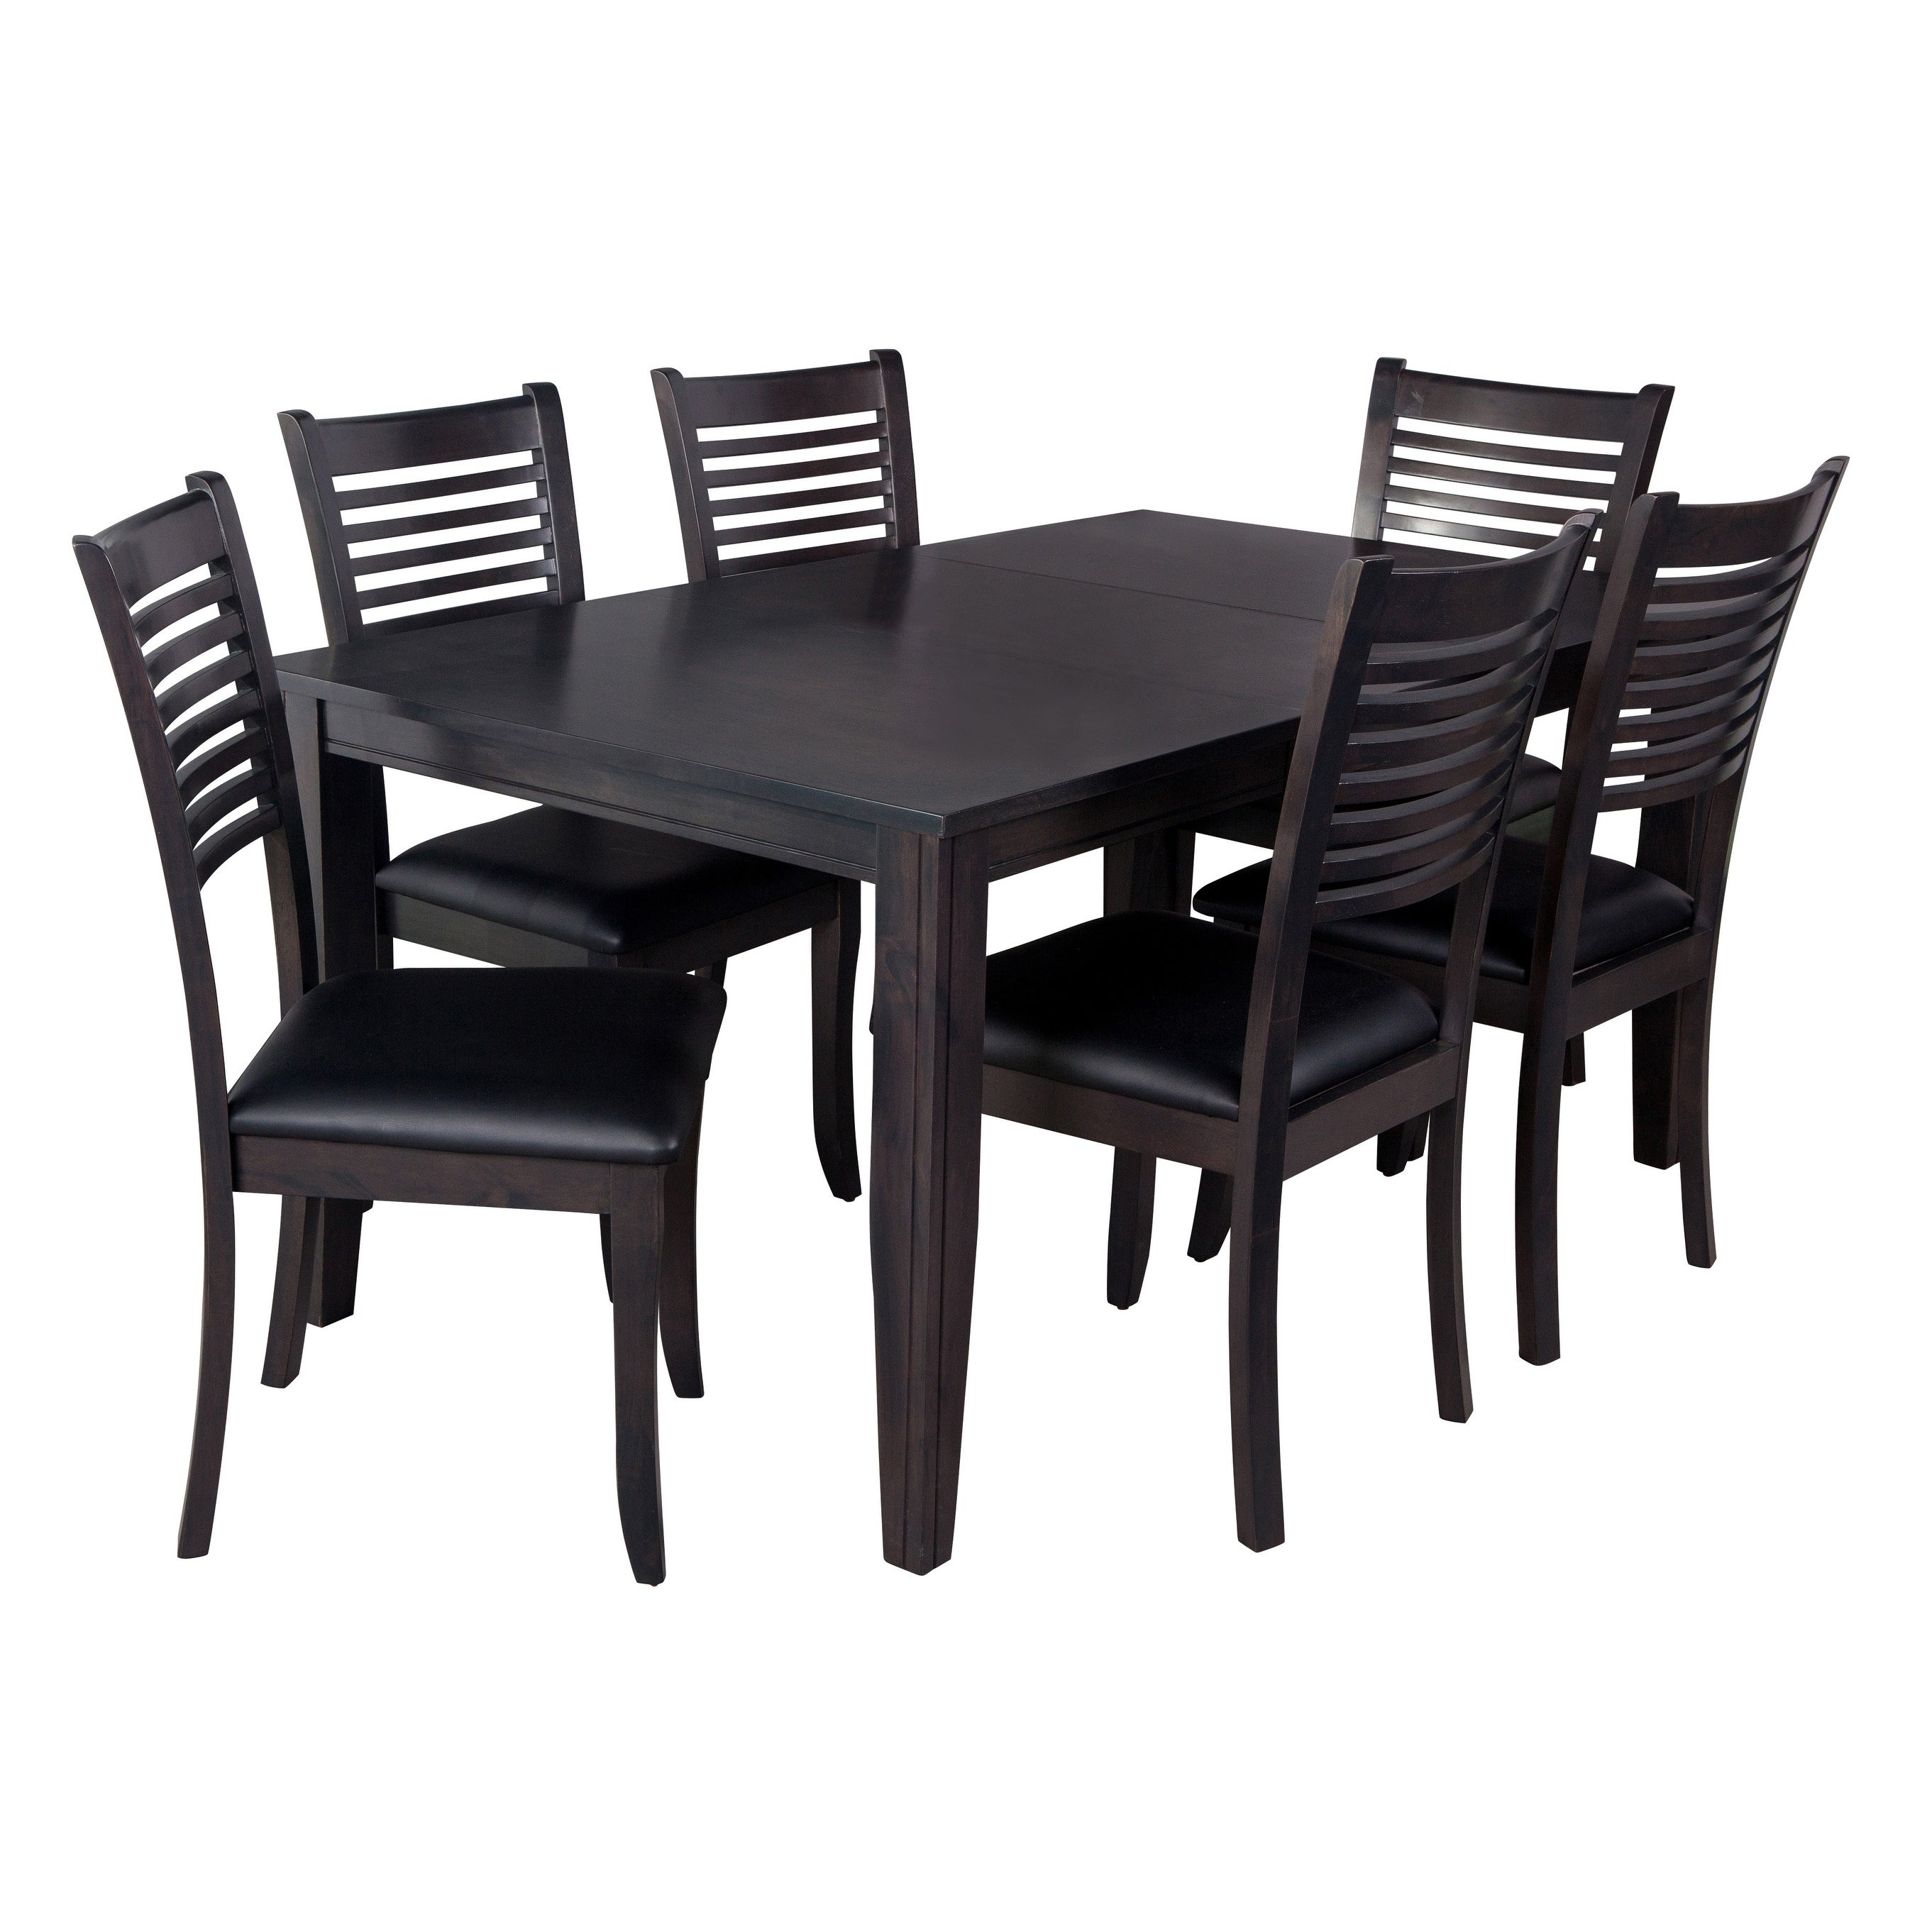 "Inspiration about Well Known Shop 7 Piece Solid Wood Dining Set ""aden"", Modern Kitchen Table Set Intended For Adan 5 Piece Solid Wood Dining Sets (Set Of 5) (#7 of 20)"